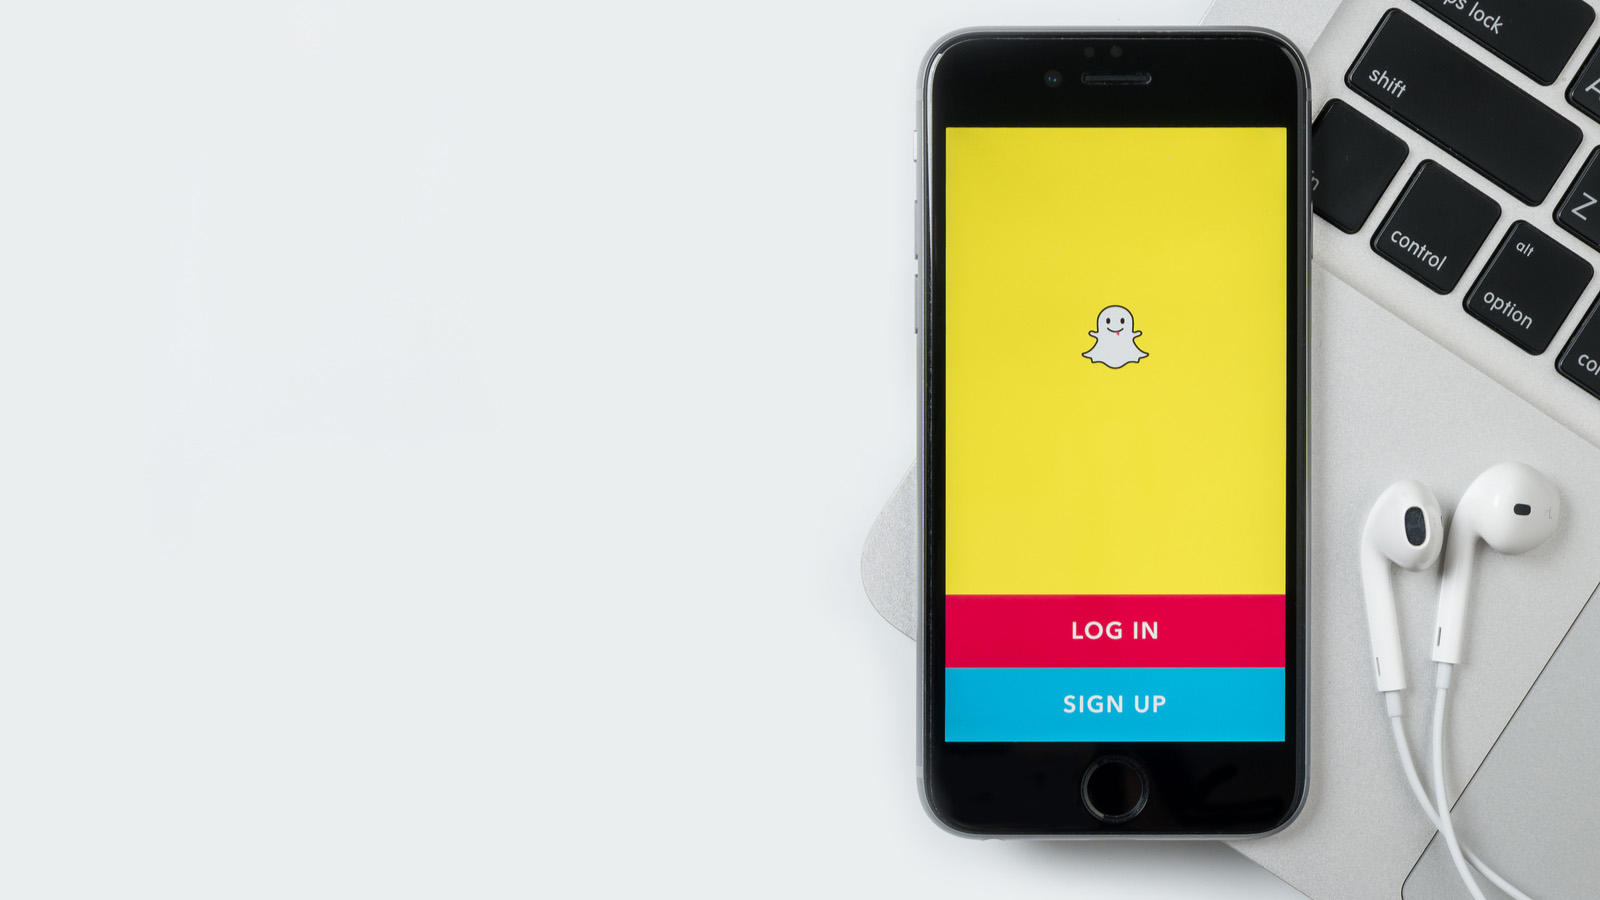 Expect an Extreme Reaction in SNAP Stock Following Earnings